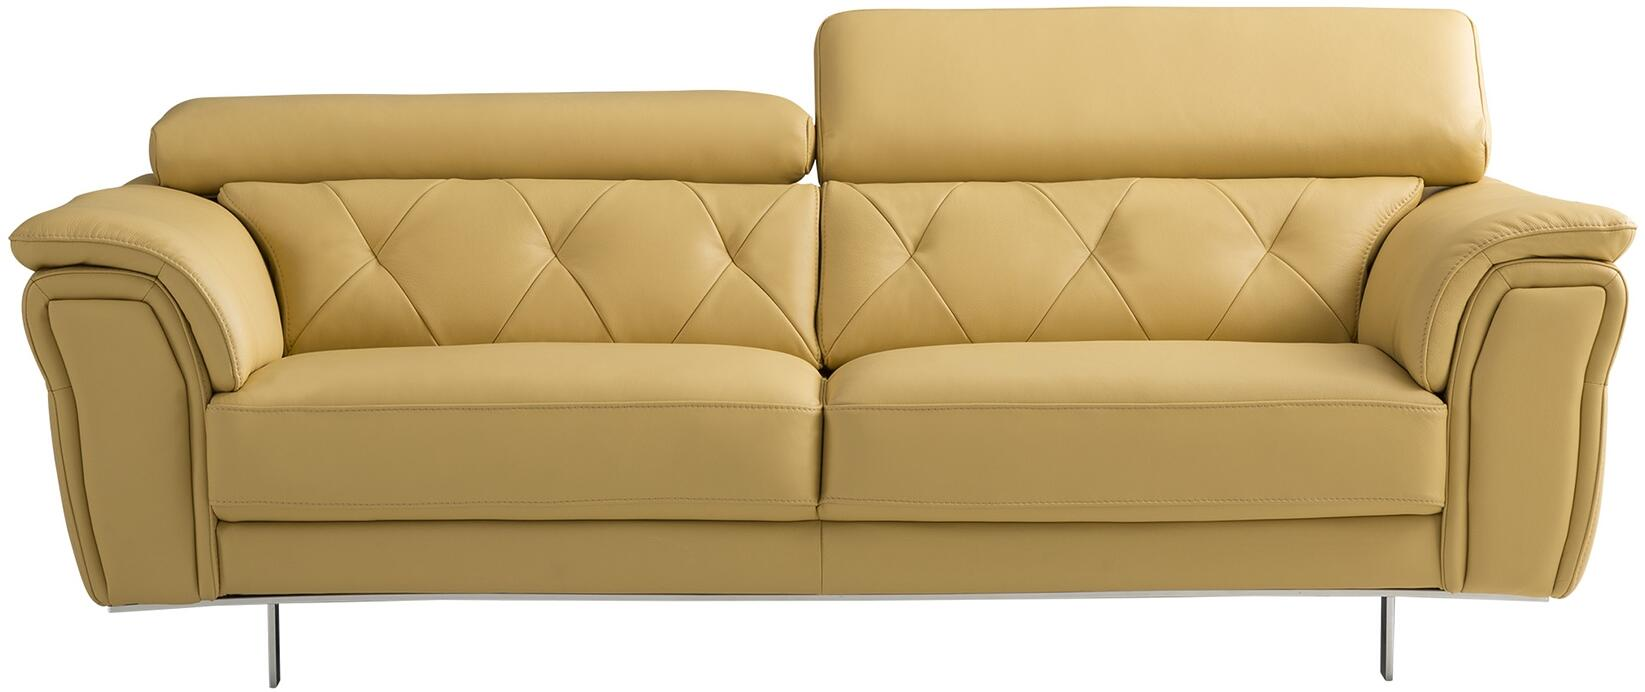 American Sofa Images American Eagle Furniture Ek068yosf